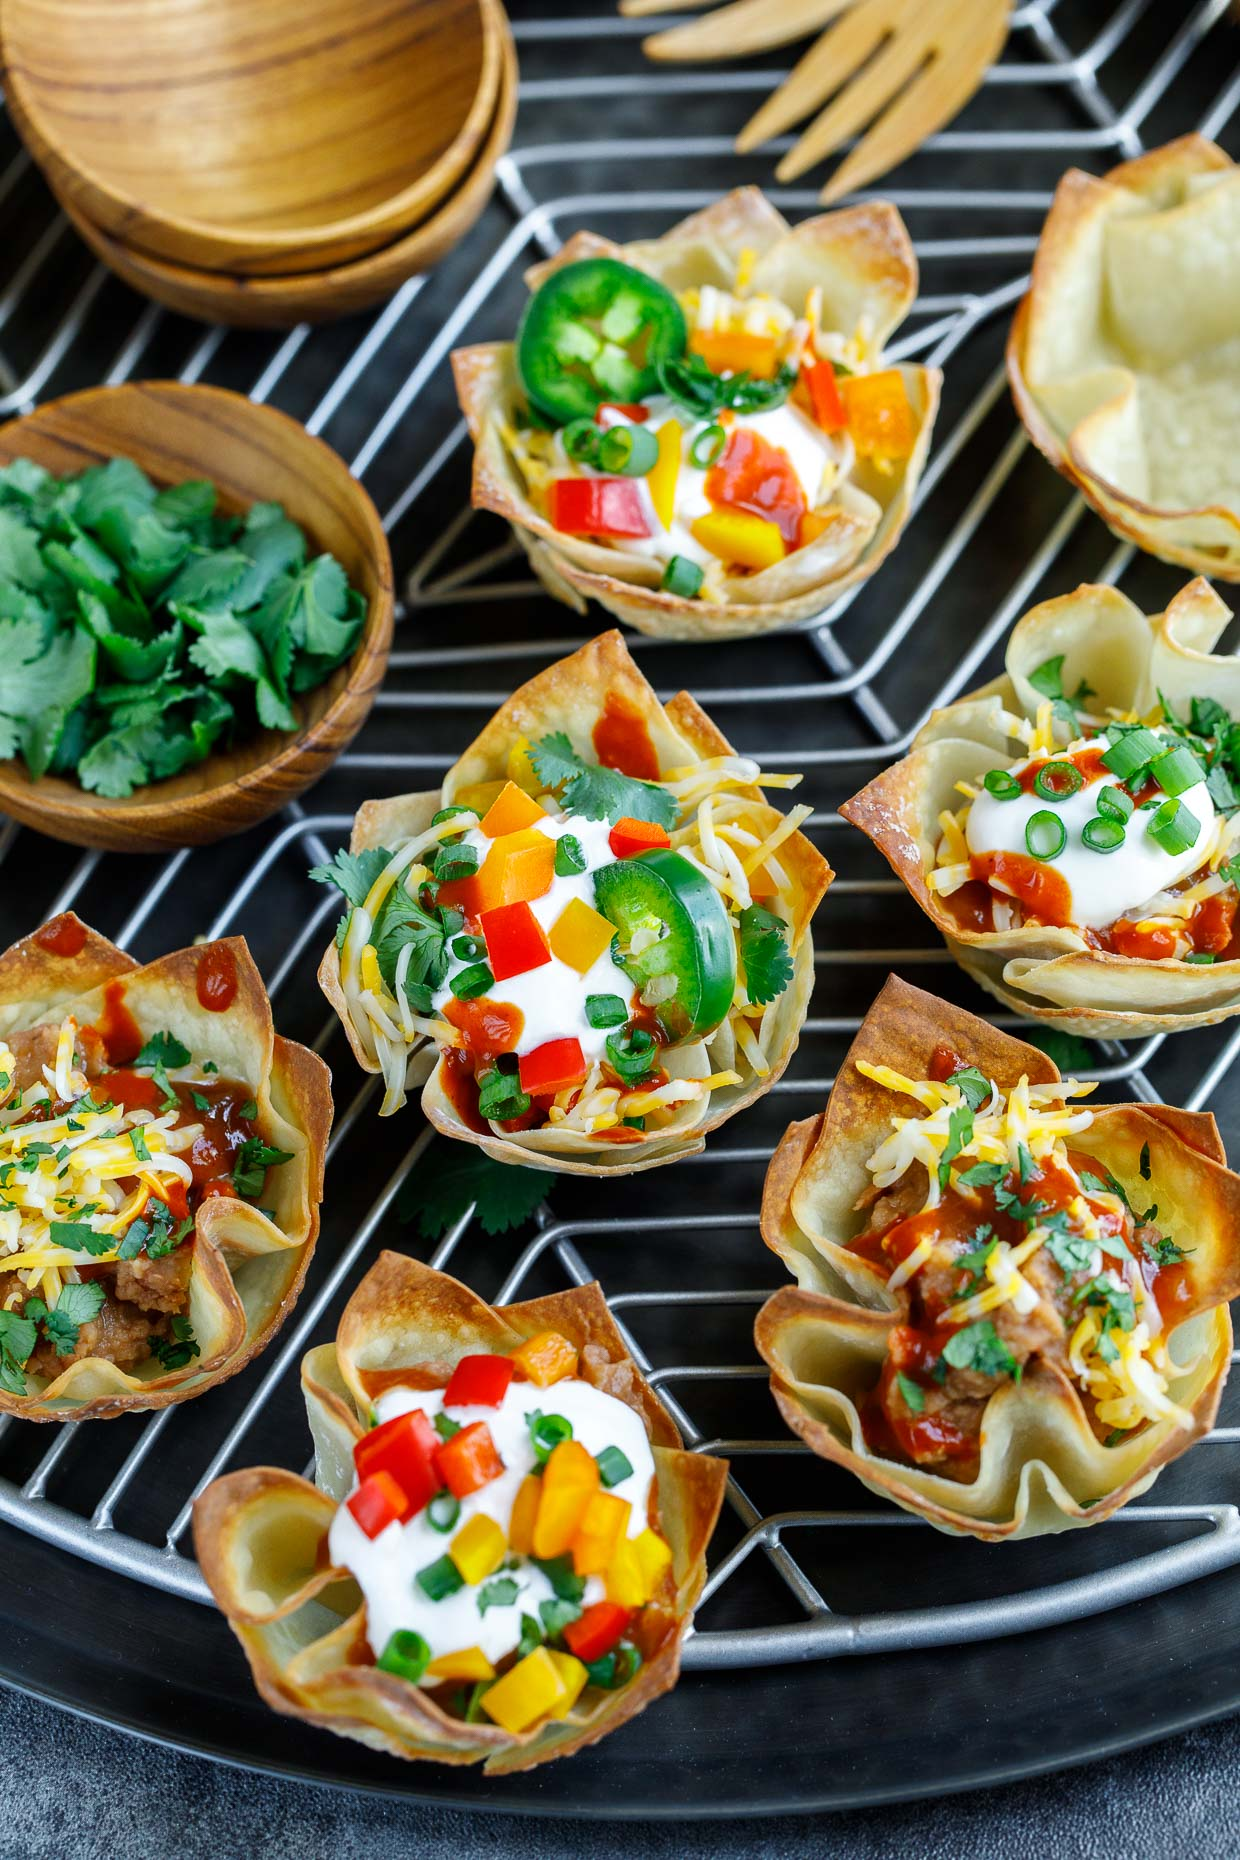 Vegetarian Wonton Taco Cups with Toppings